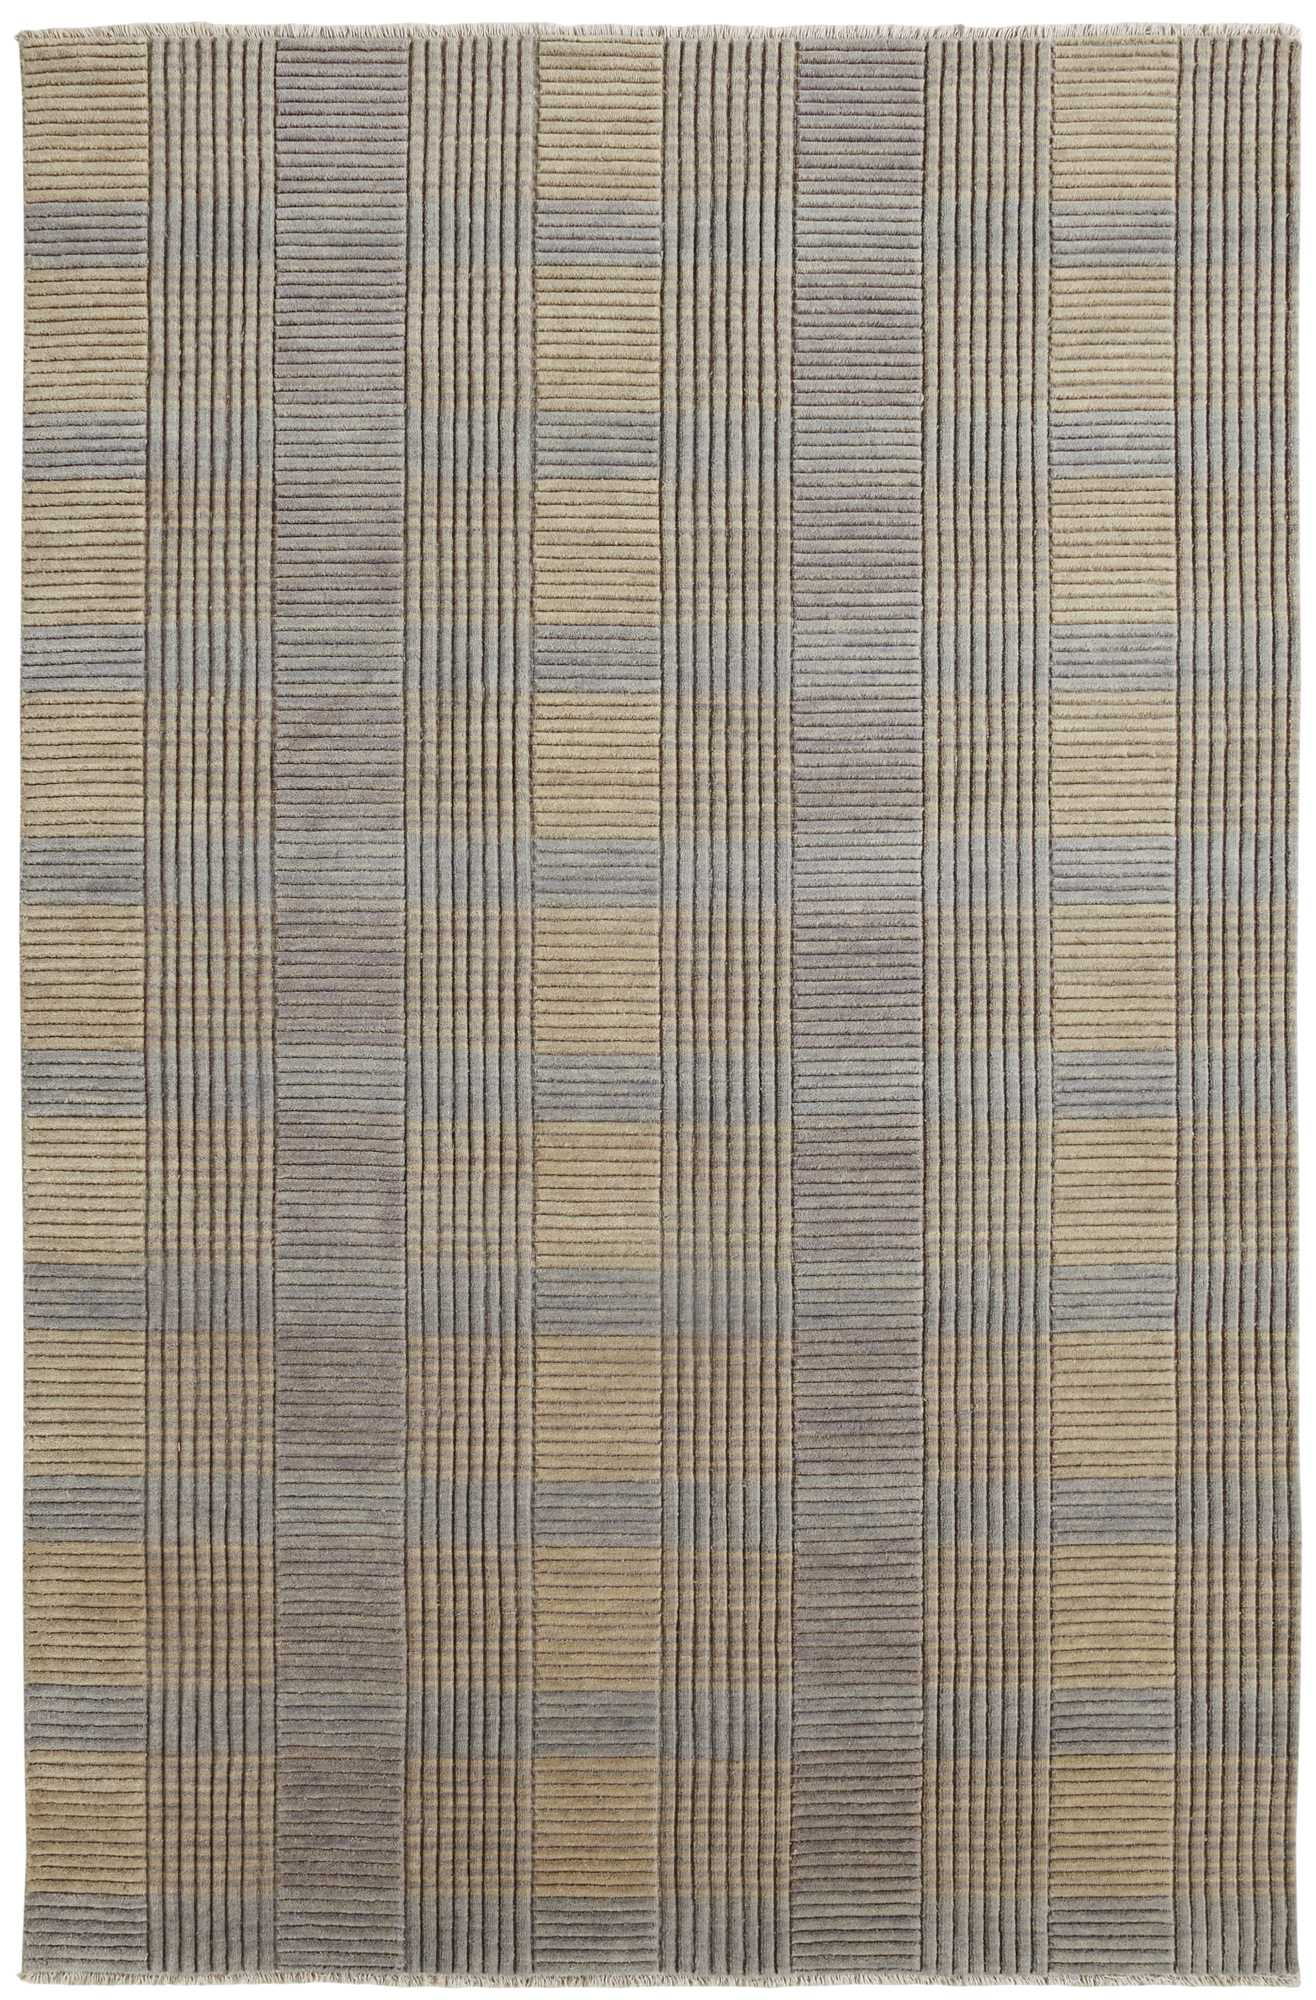 Dynamic Rugs Lounge Geometric Multi 9899 Area Rug